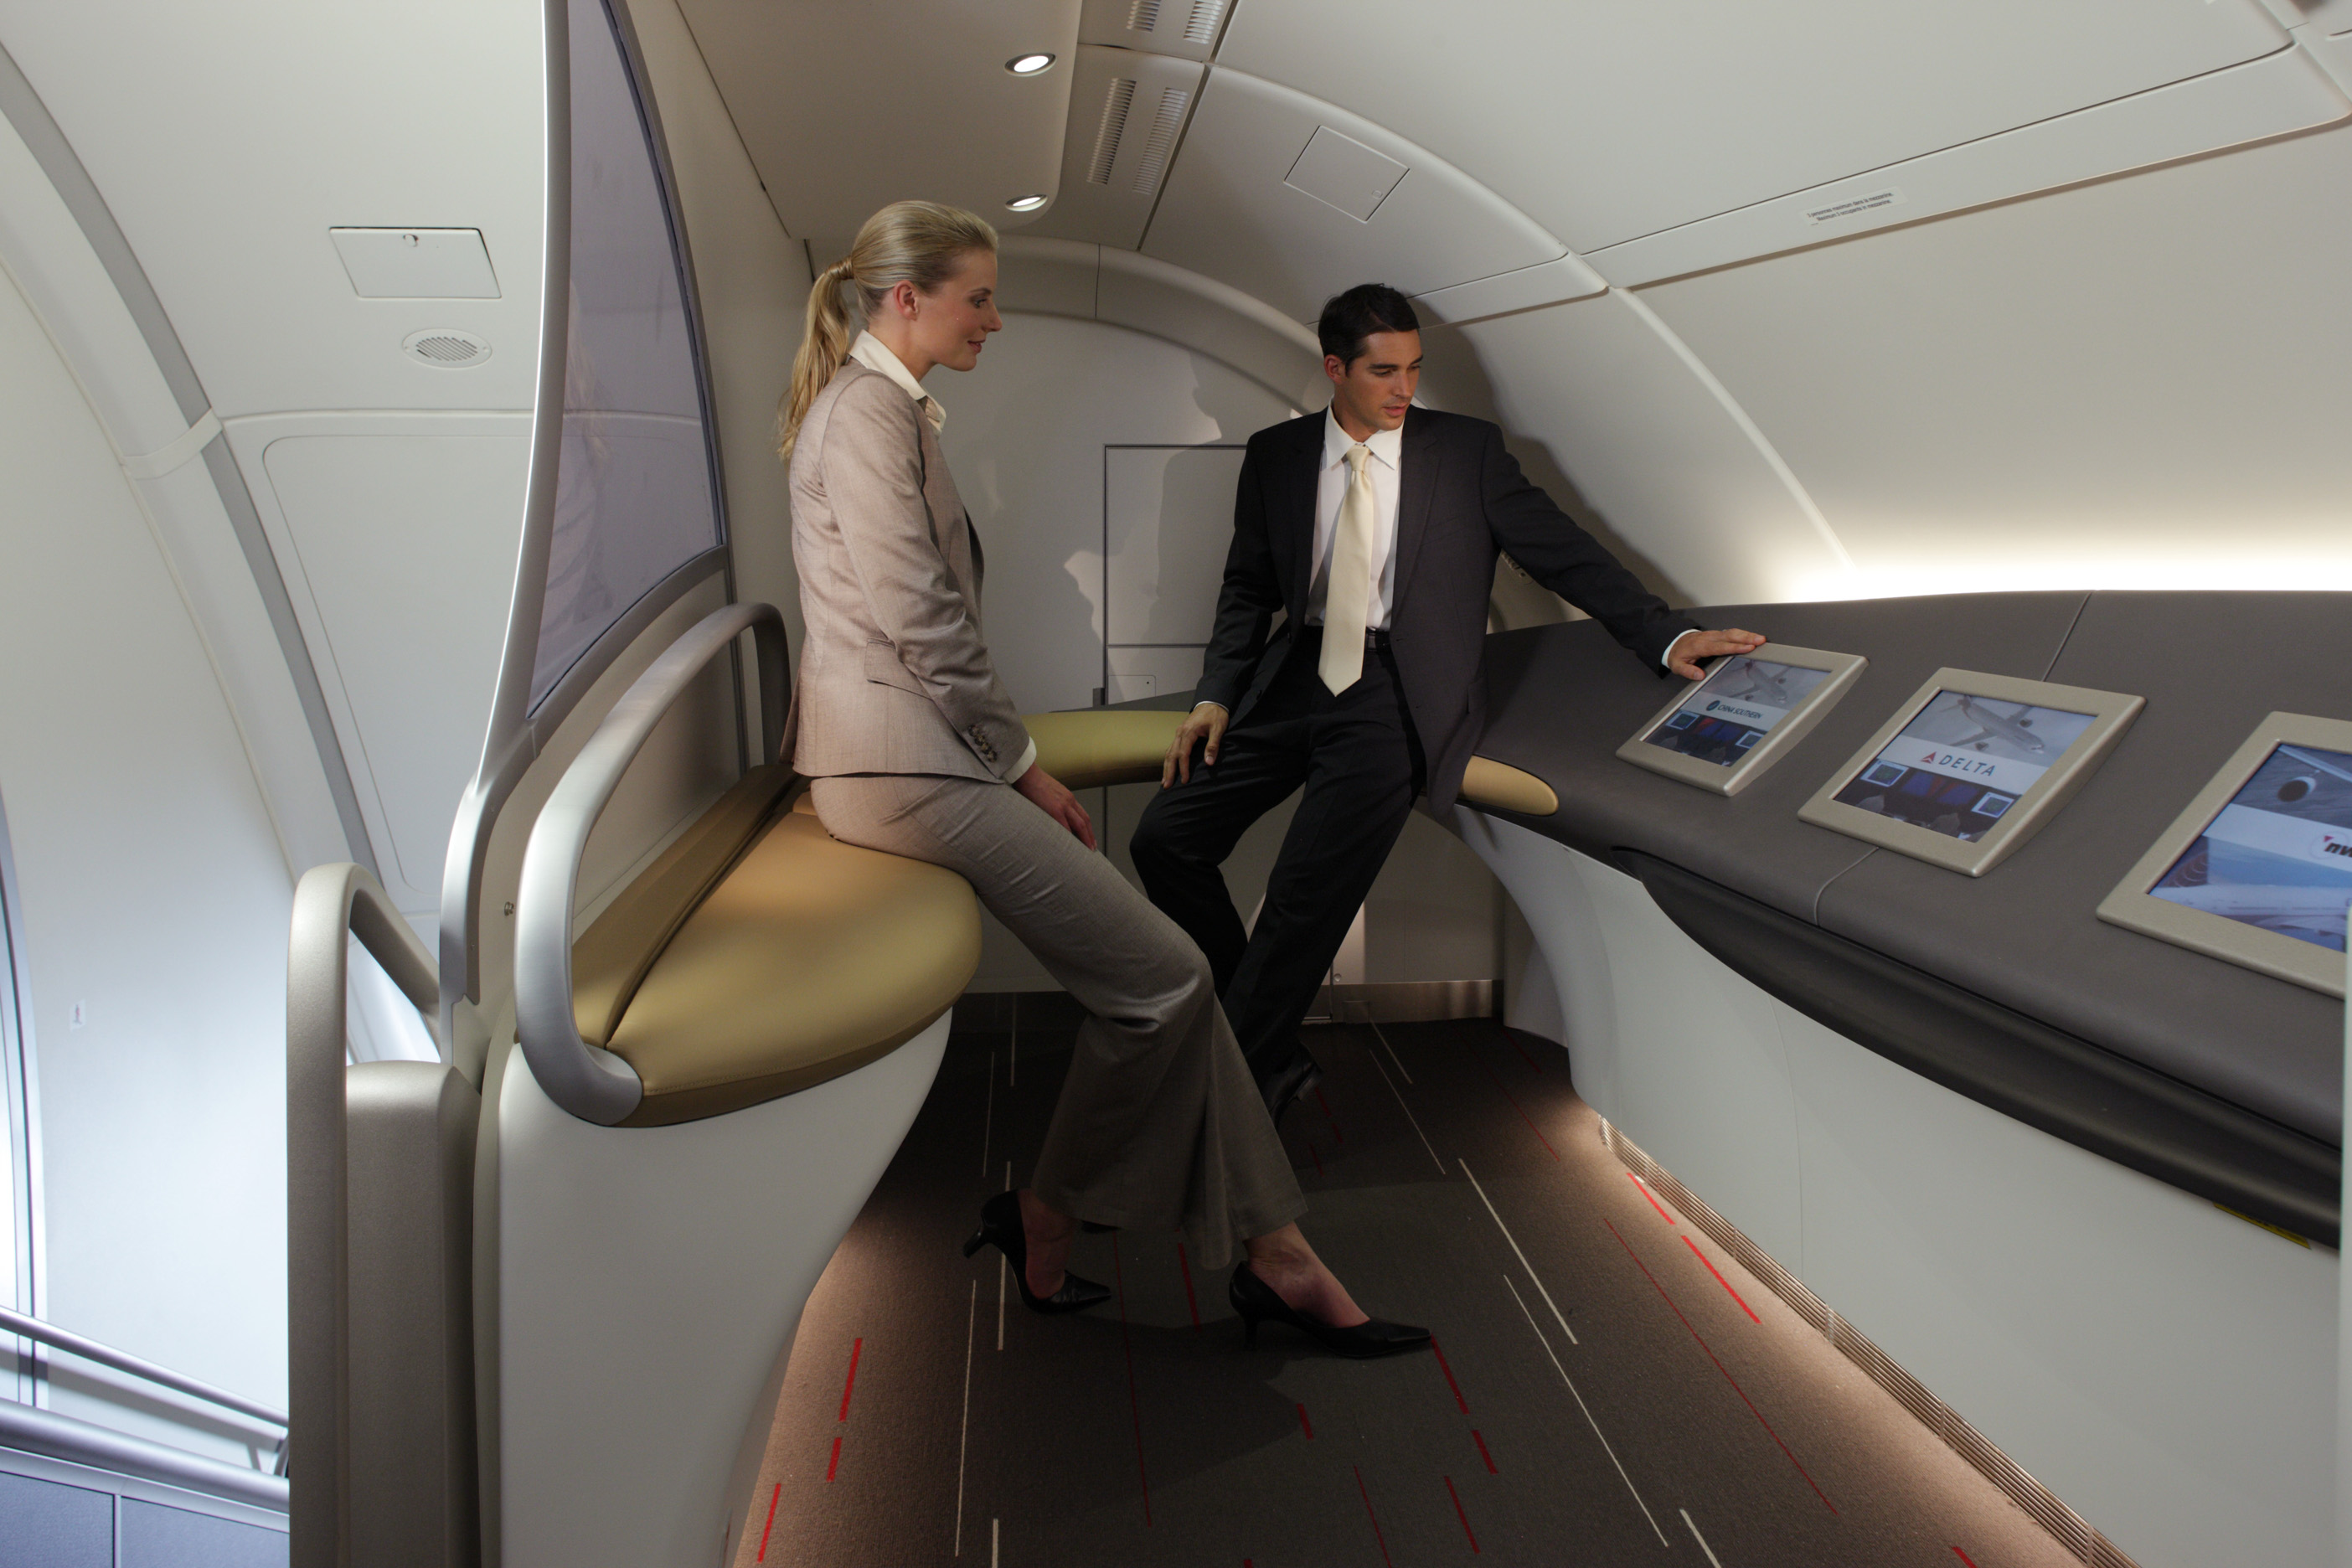 Casually peruse the art gallery on your next Air France flight (photo via corporate.airfrance.com)